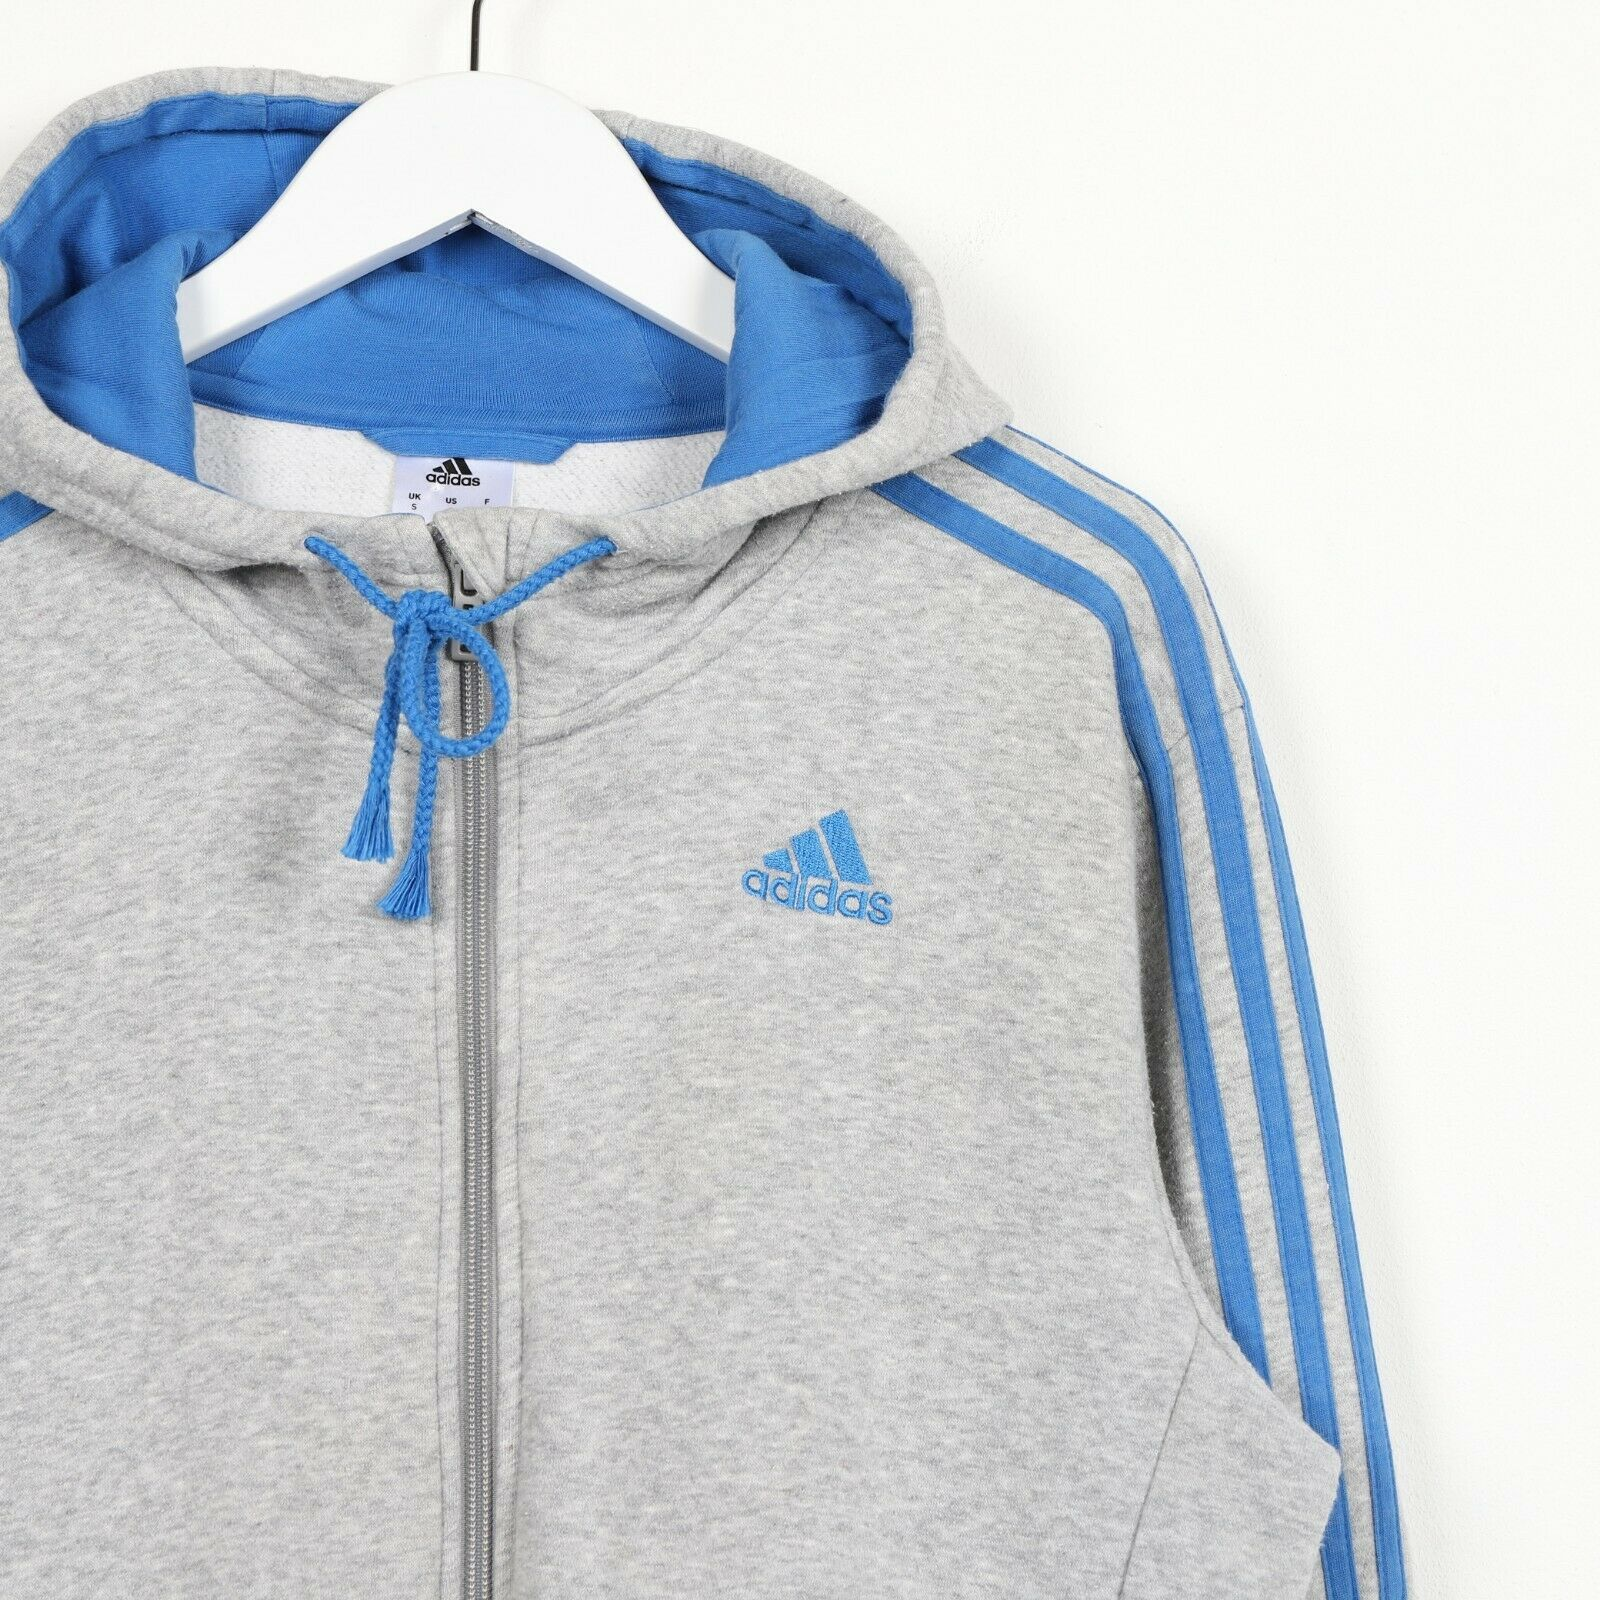 Vintage ADIDAS Sleeve Logo Zip Up Hoodie Grey | Small S